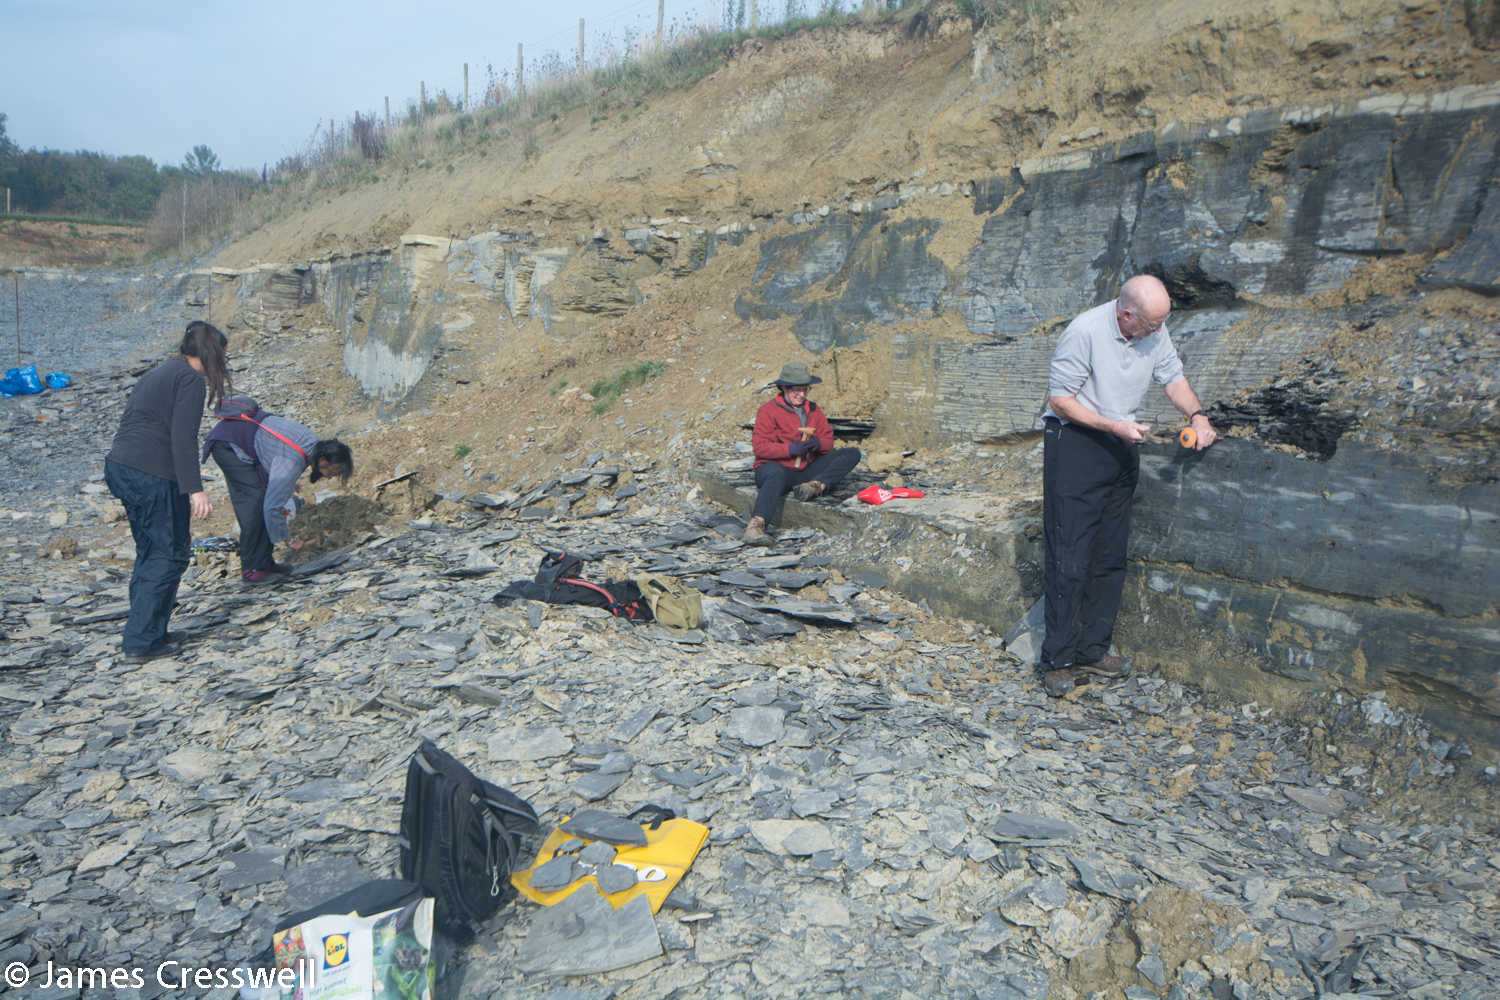 People finding fossils in a quarry